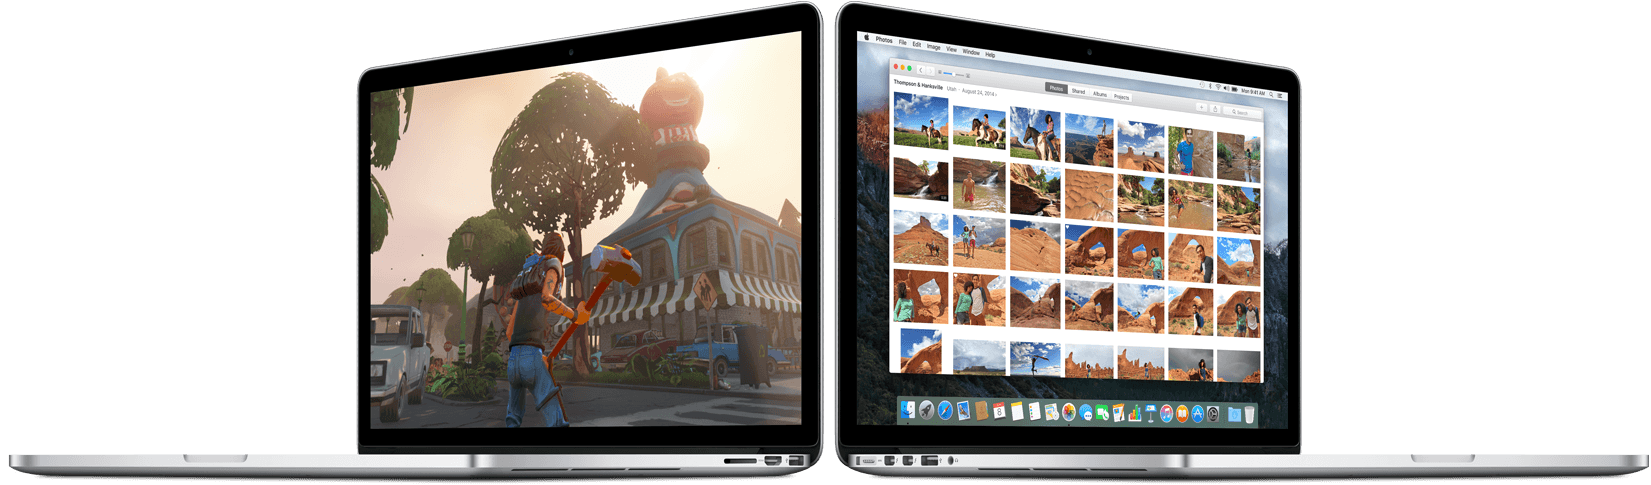 OS X El Capitan op MacBooks.